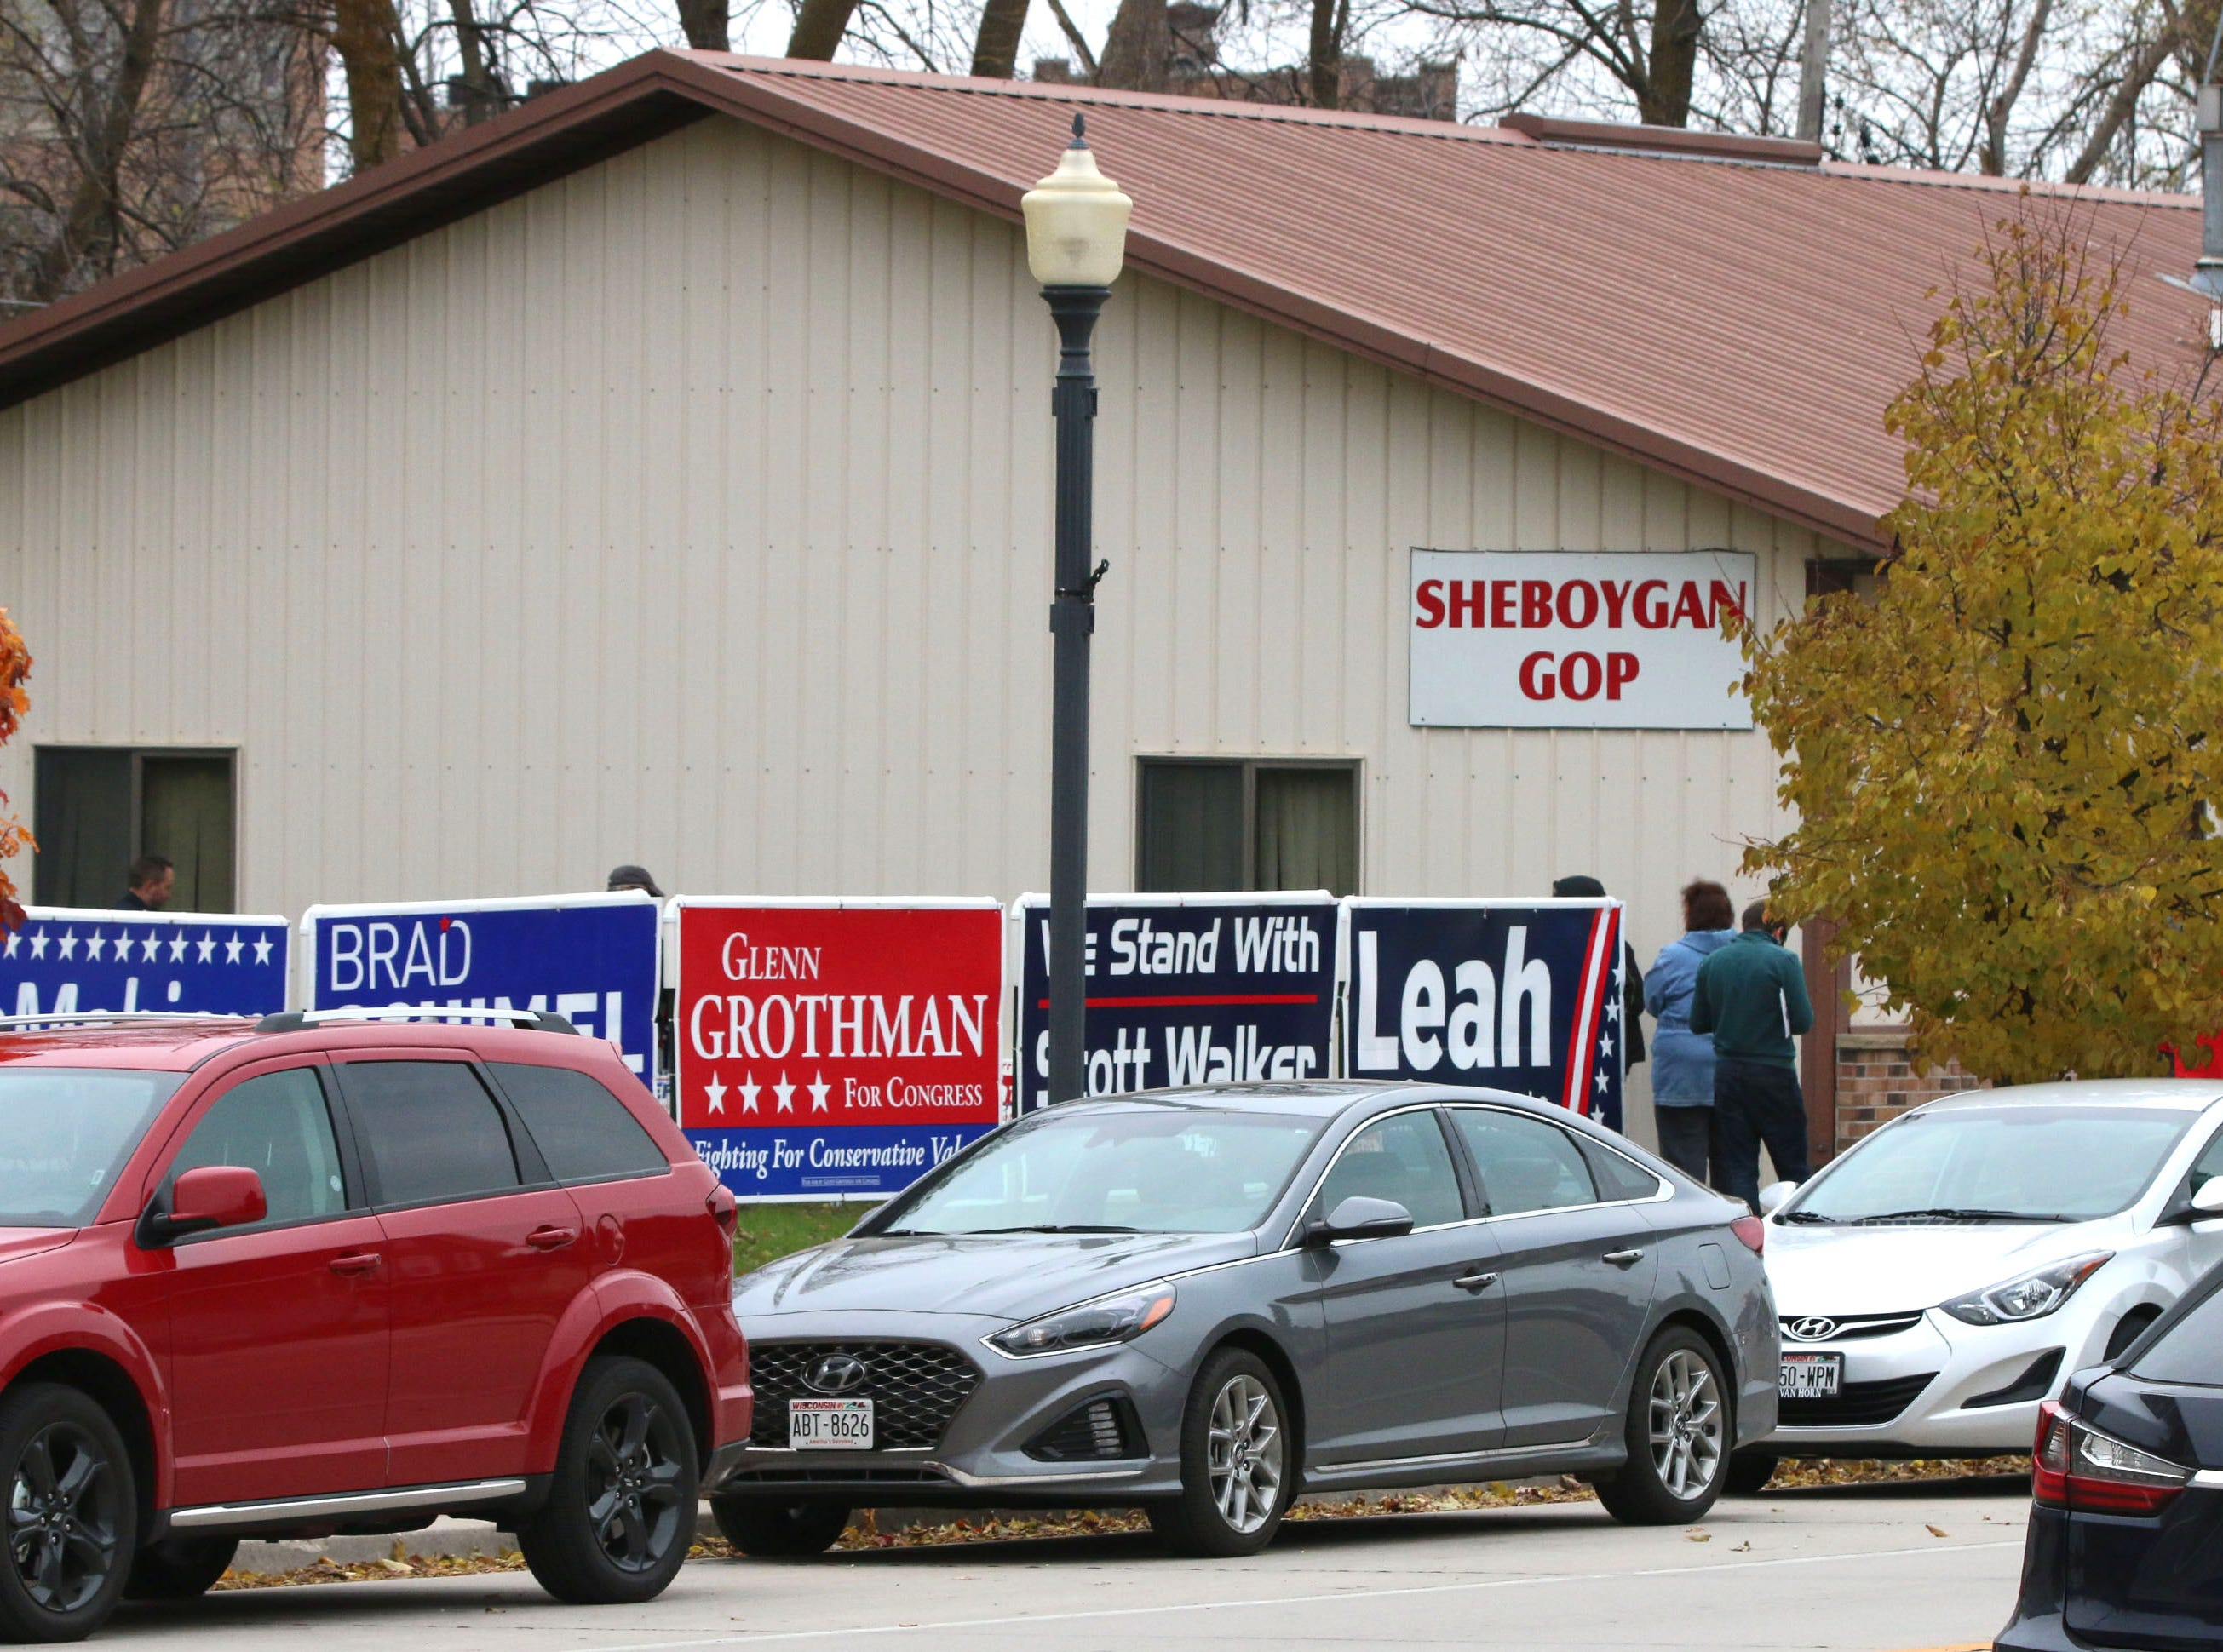 Cars line Indiana Avenue during a Republican rally at the GOP headquarters, Tuesday, October 30, 2018, in Sheboygan, Wis.